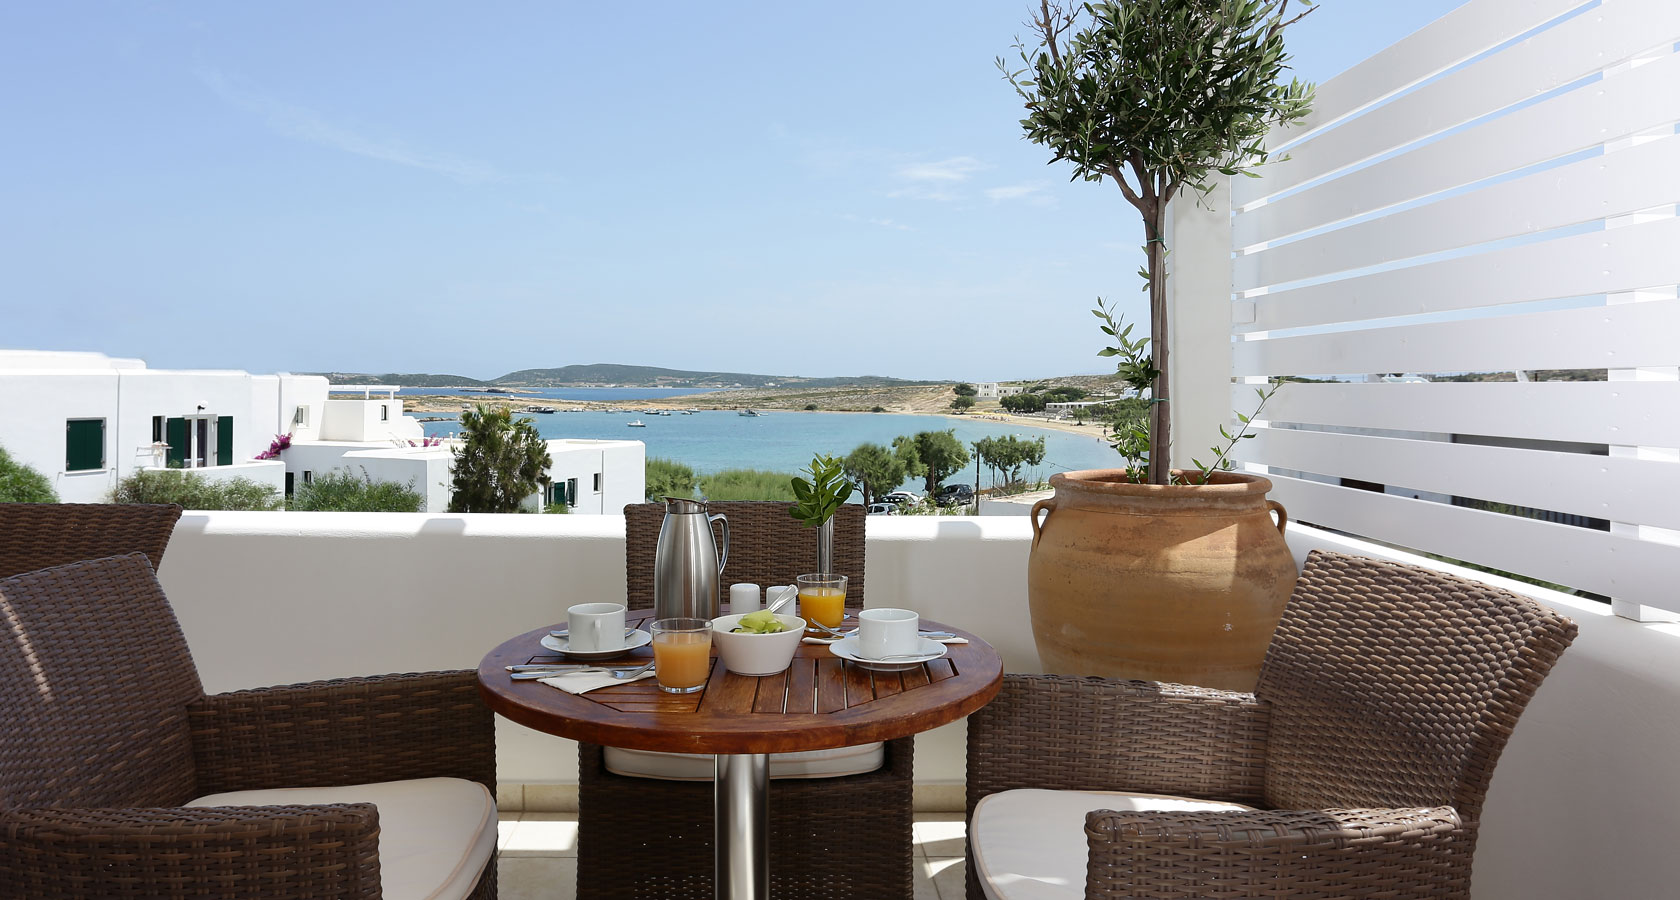 Outdoor breakfast area with sea view